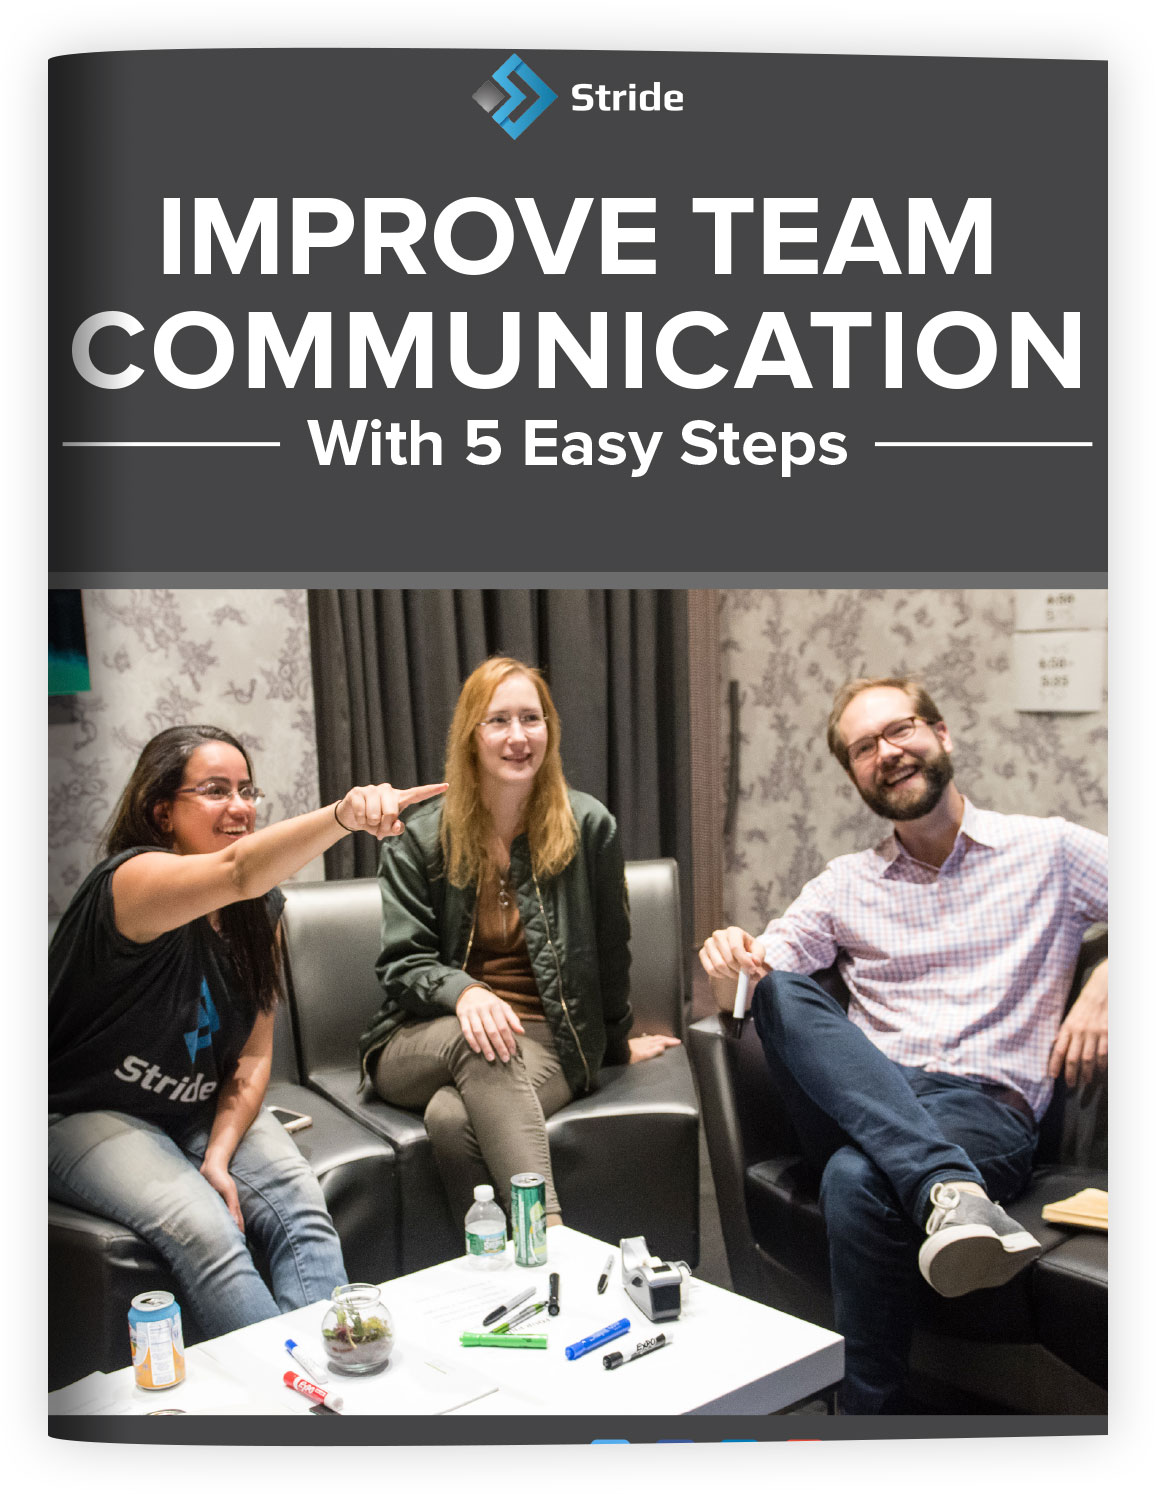 Improve-Team-Communication-With-5-Easy-Steps.jpg